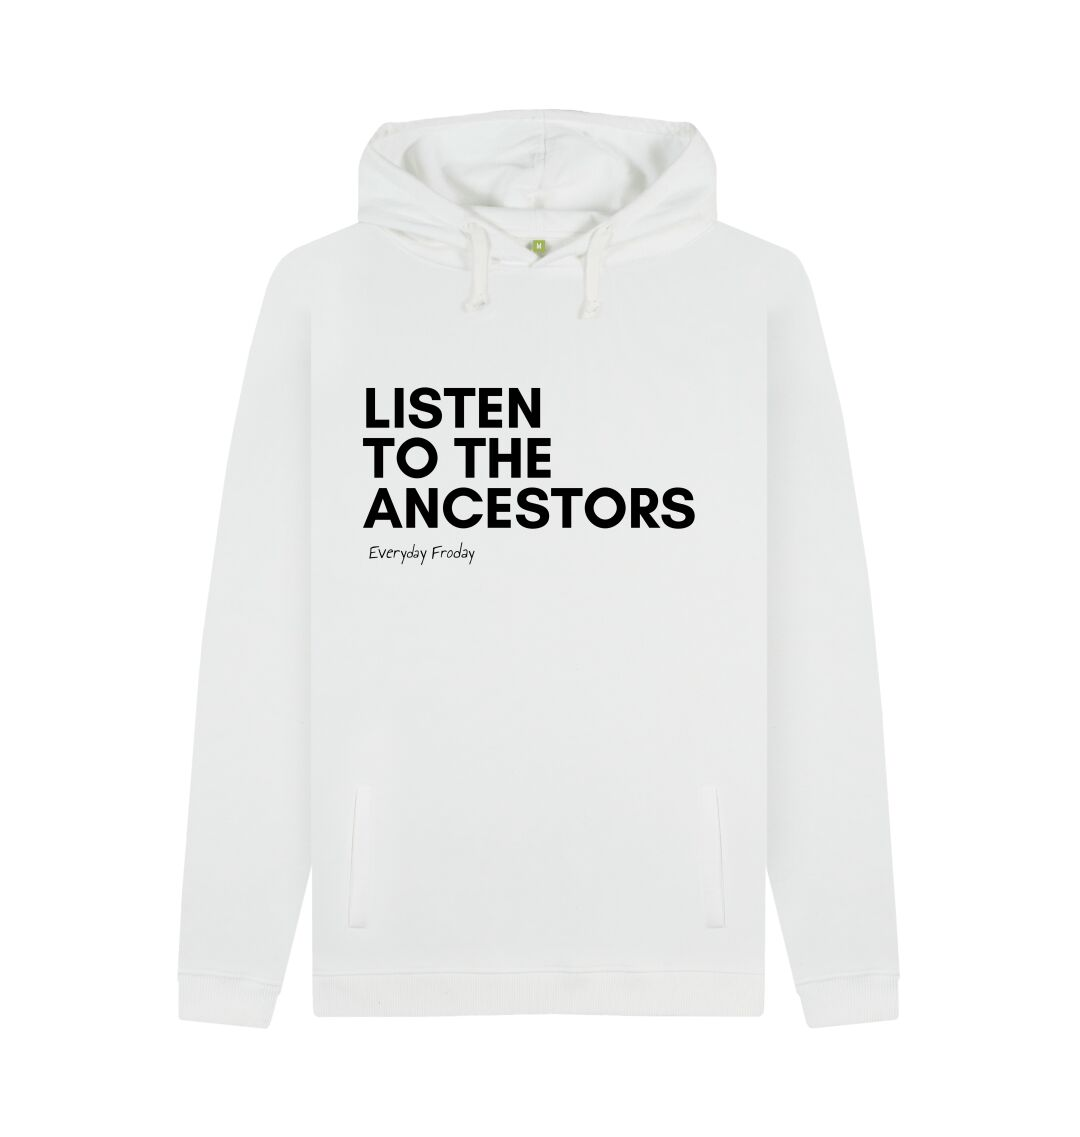 White Unisex Hoodie | Listen to the ancestors